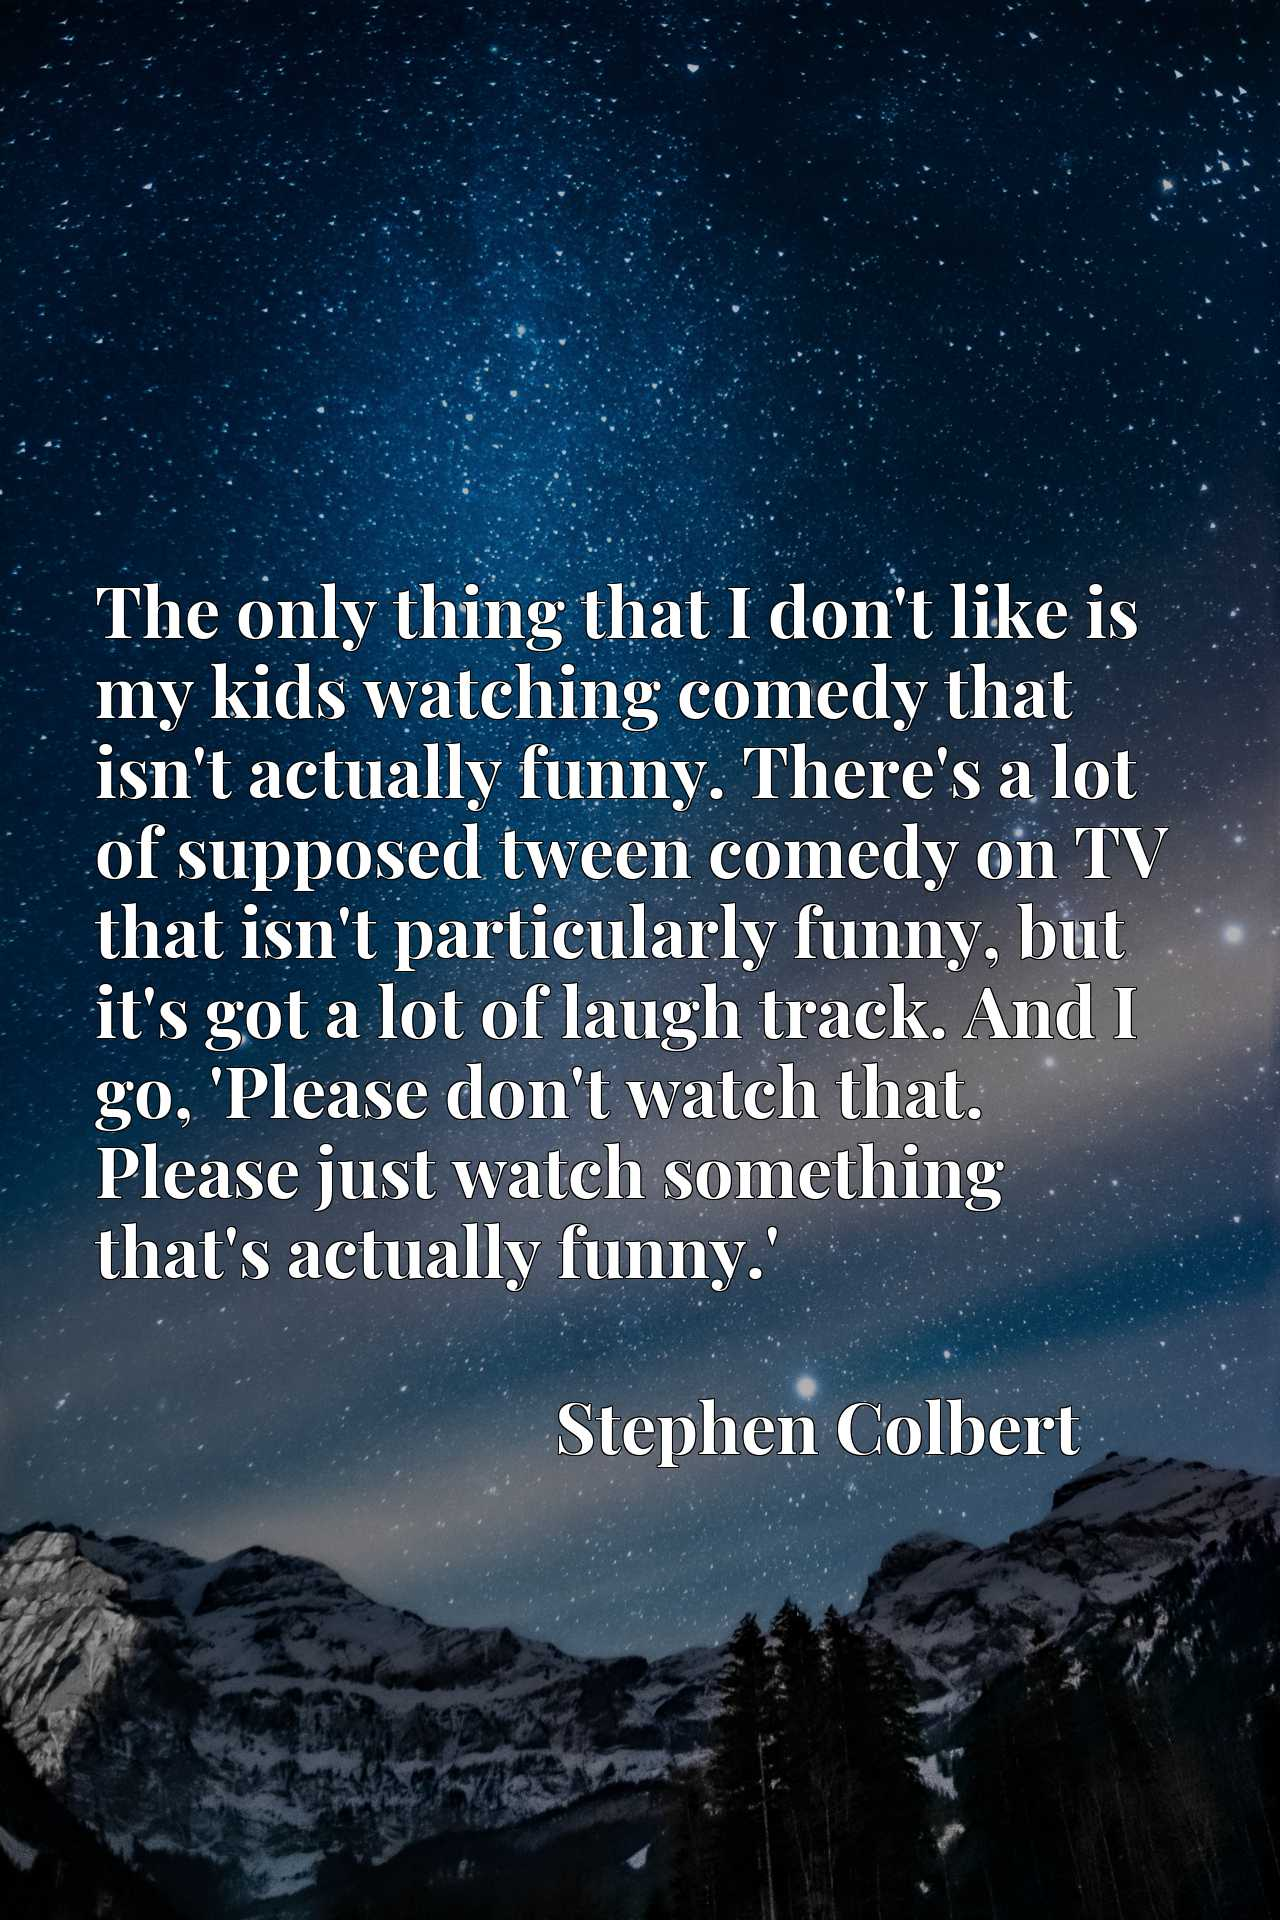 The only thing that I don't like is my kids watching comedy that isn't actually funny. There's a lot of supposed tween comedy on TV that isn't particularly funny, but it's got a lot of laugh track. And I go, 'Please don't watch that. Please just watch something that's actually funny.'